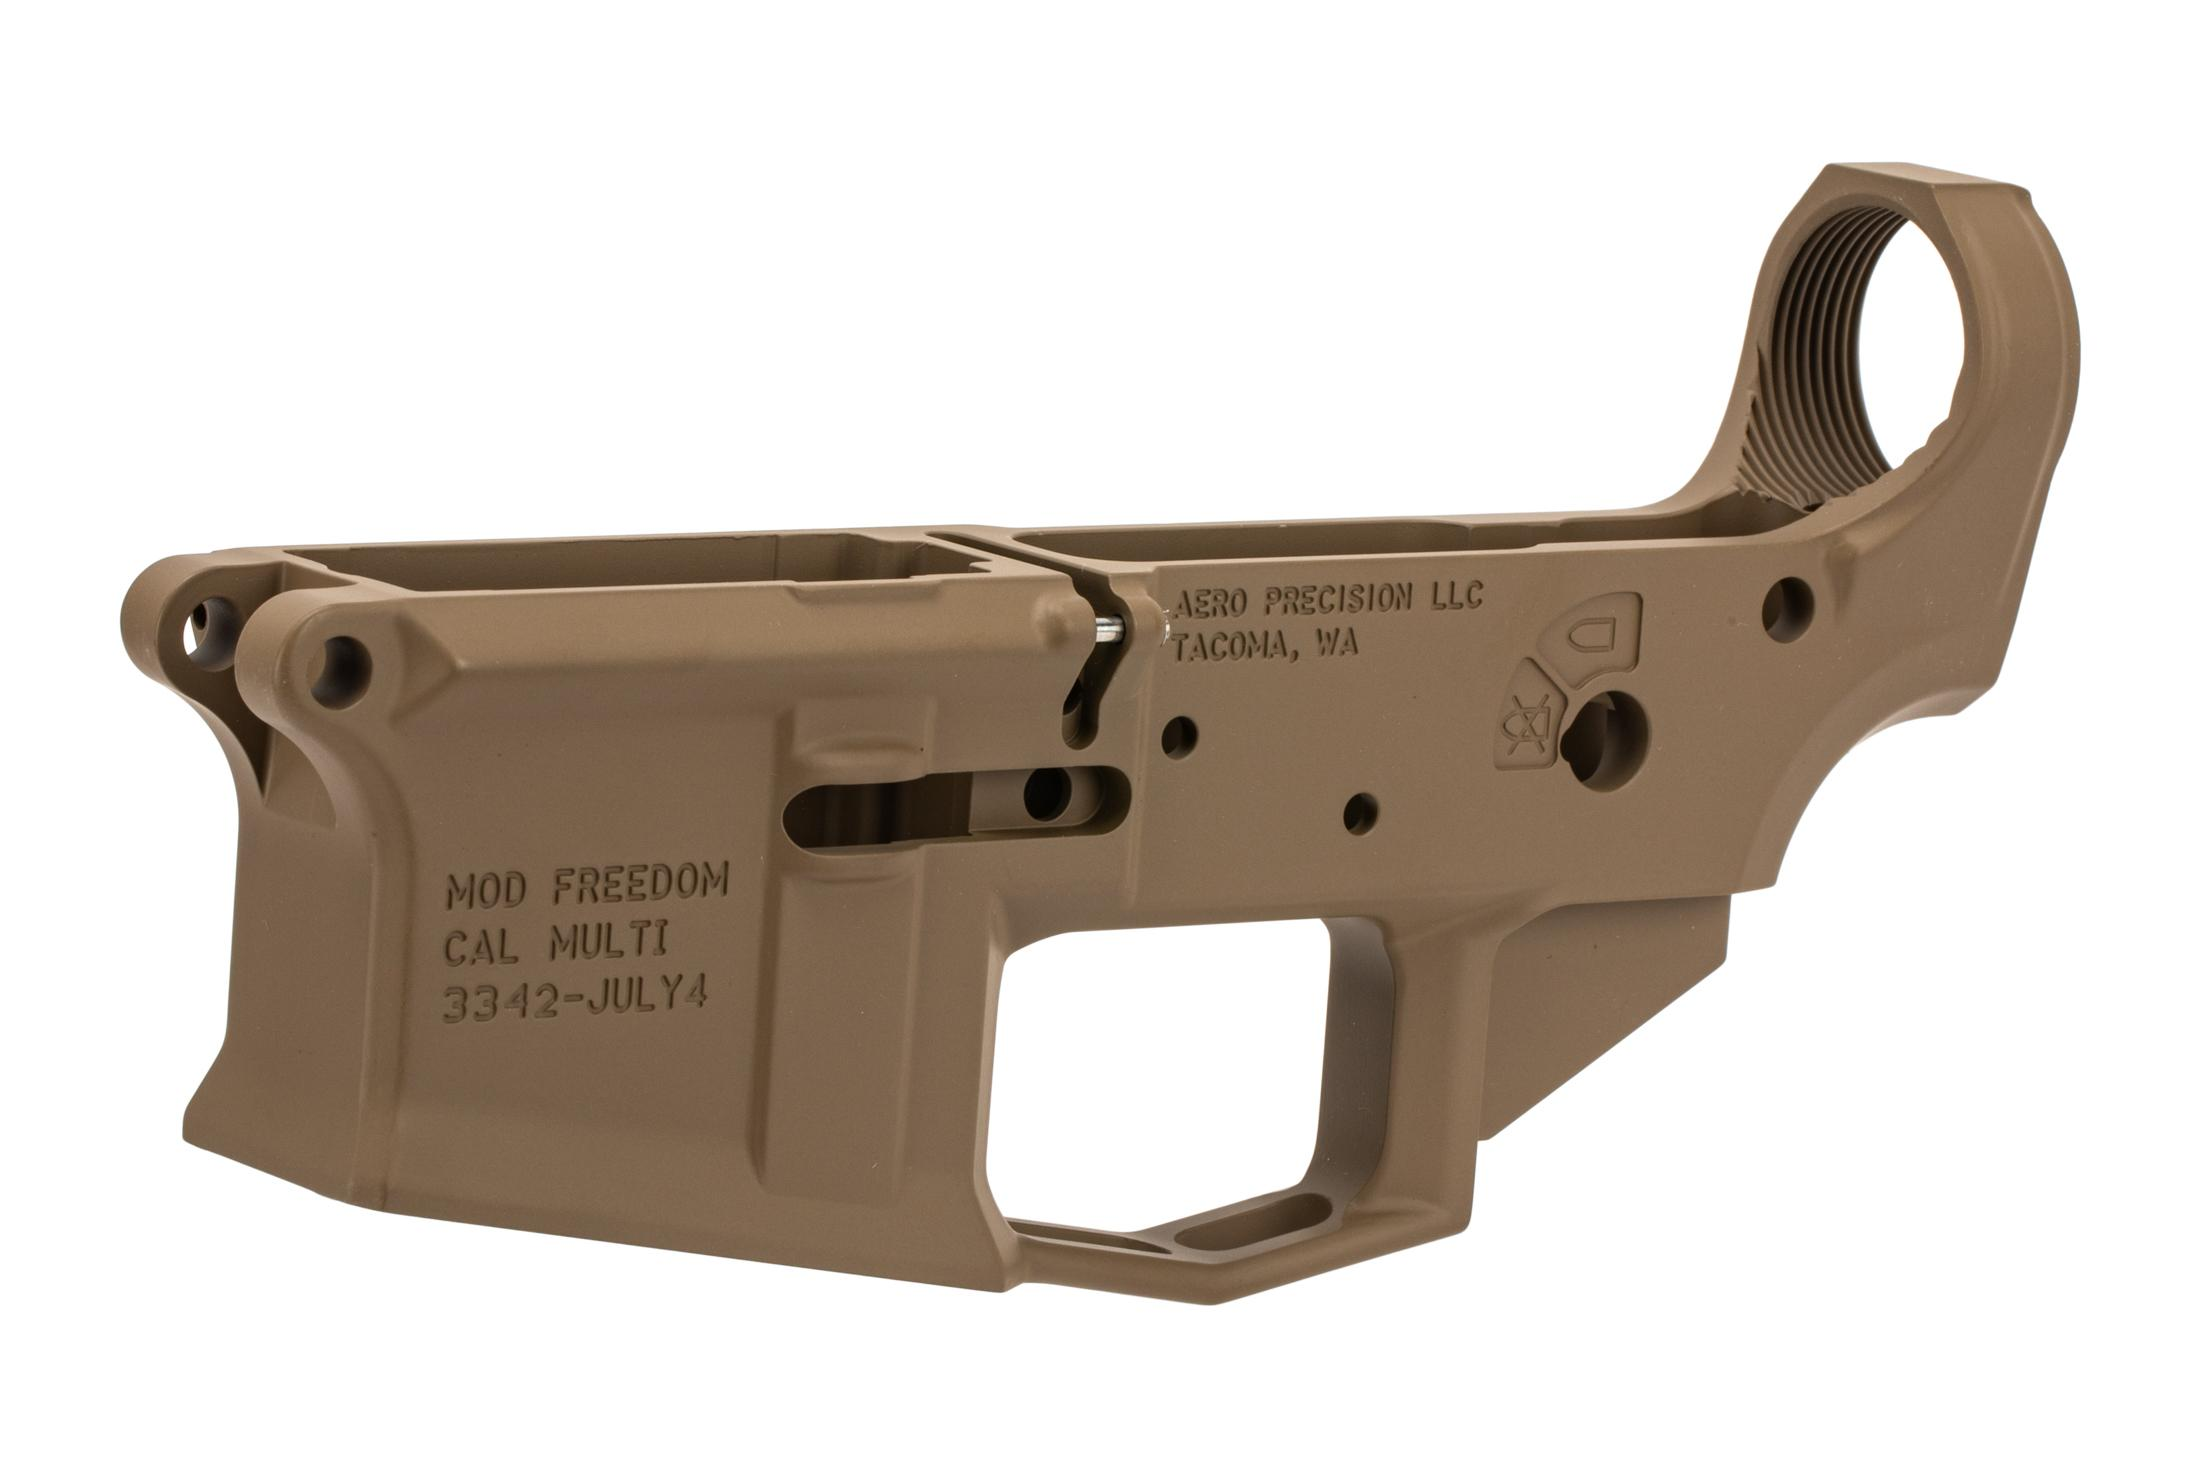 Aero Precision fde M4E1 stripped special edition AR 15 lower receiver is compatible with most MIL-SPEC receivers and parts.